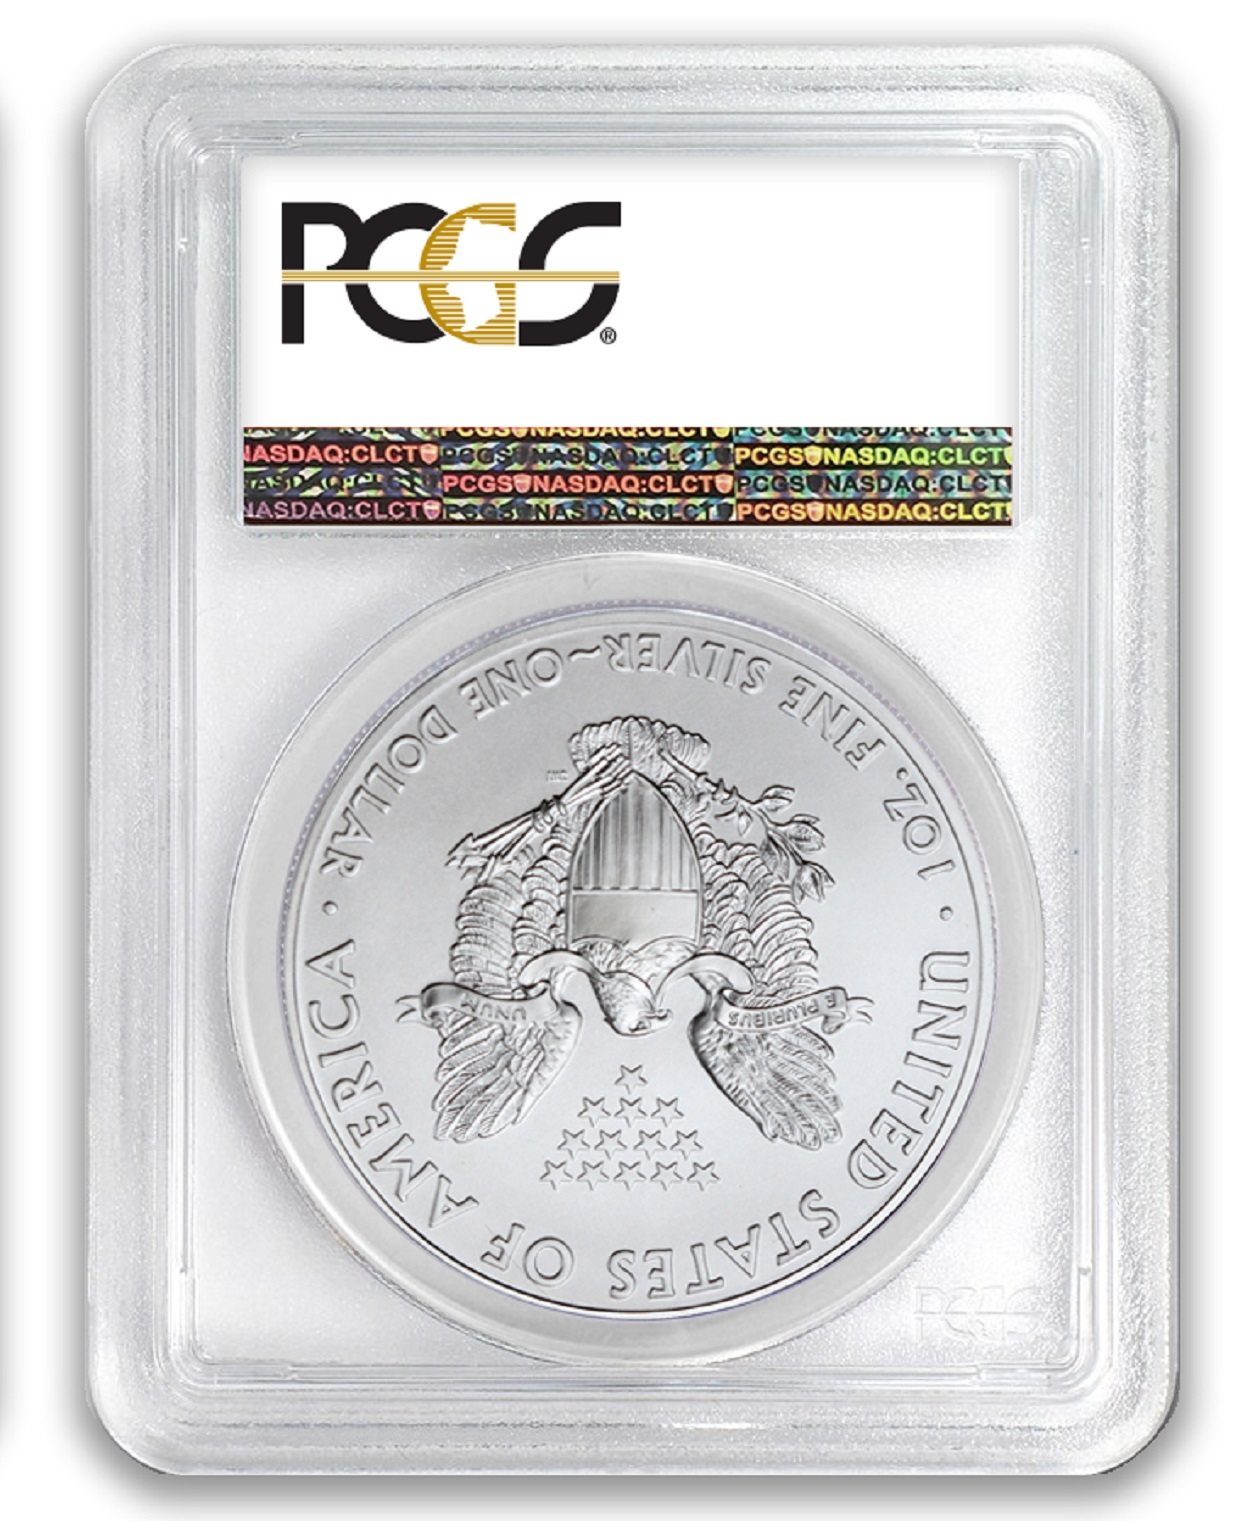 2007 1oz Silver Eagle PCGS MS69 Made In USA Label